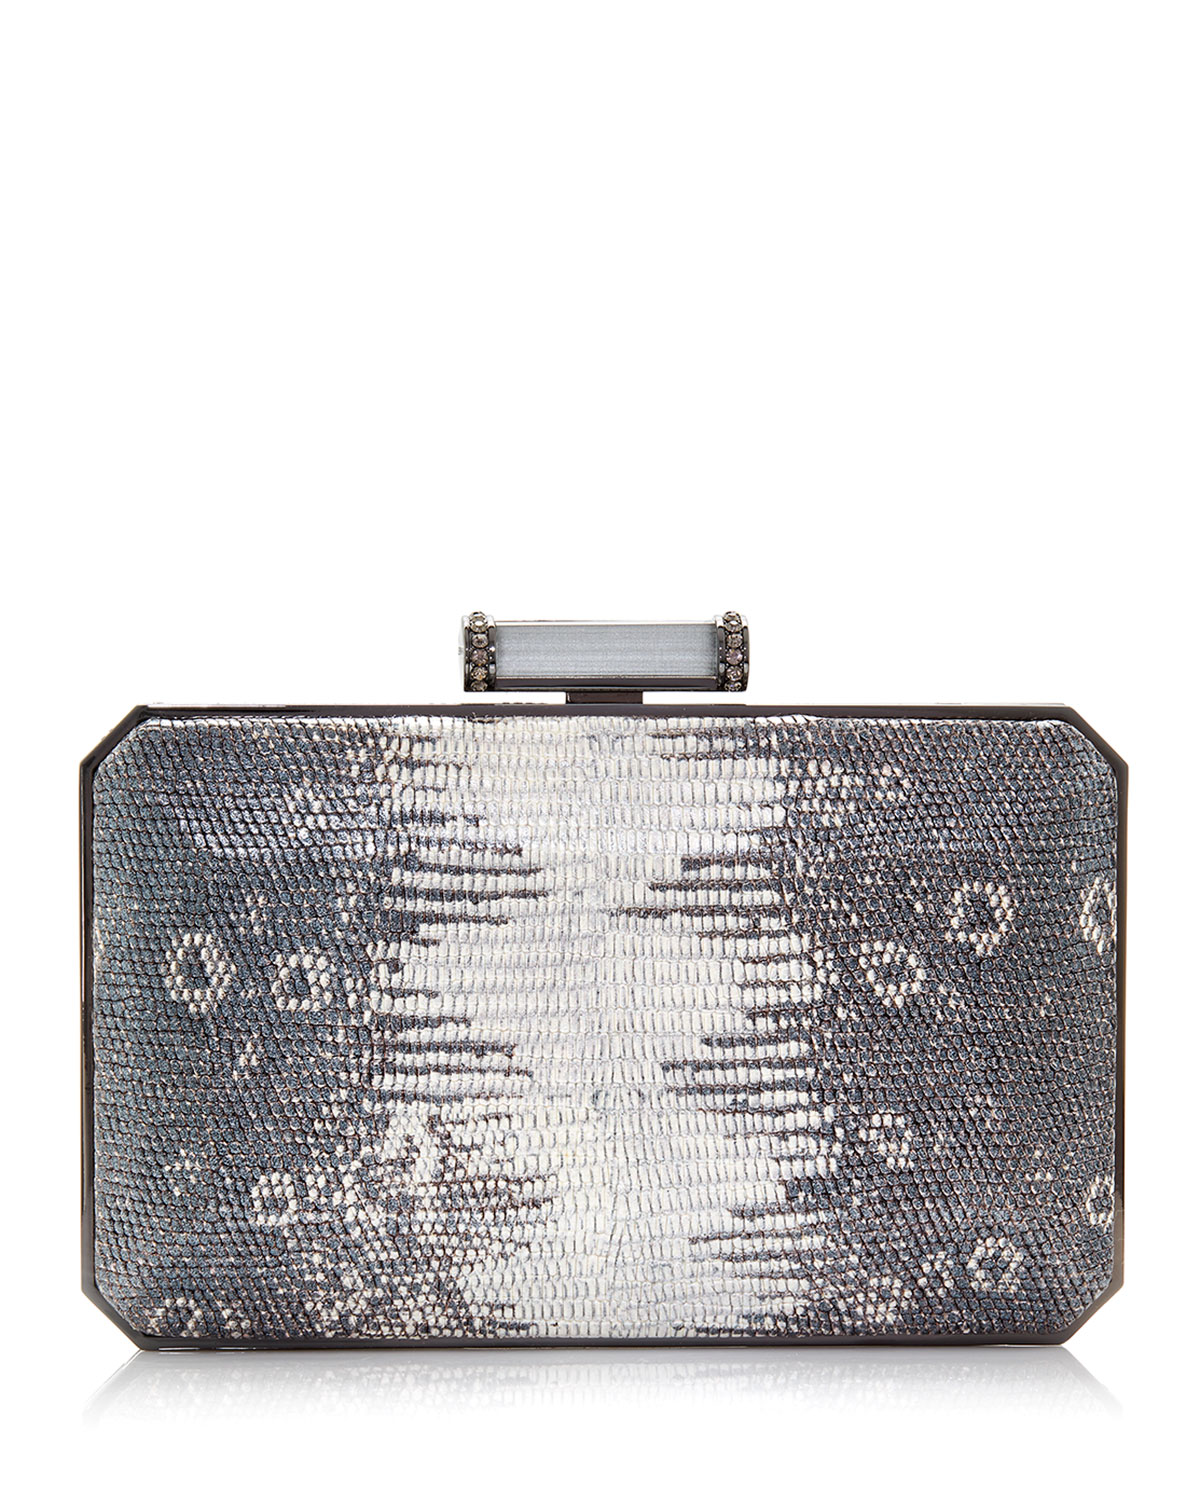 Judith Leiber Couture Soho Mia Leather Clutch Bag